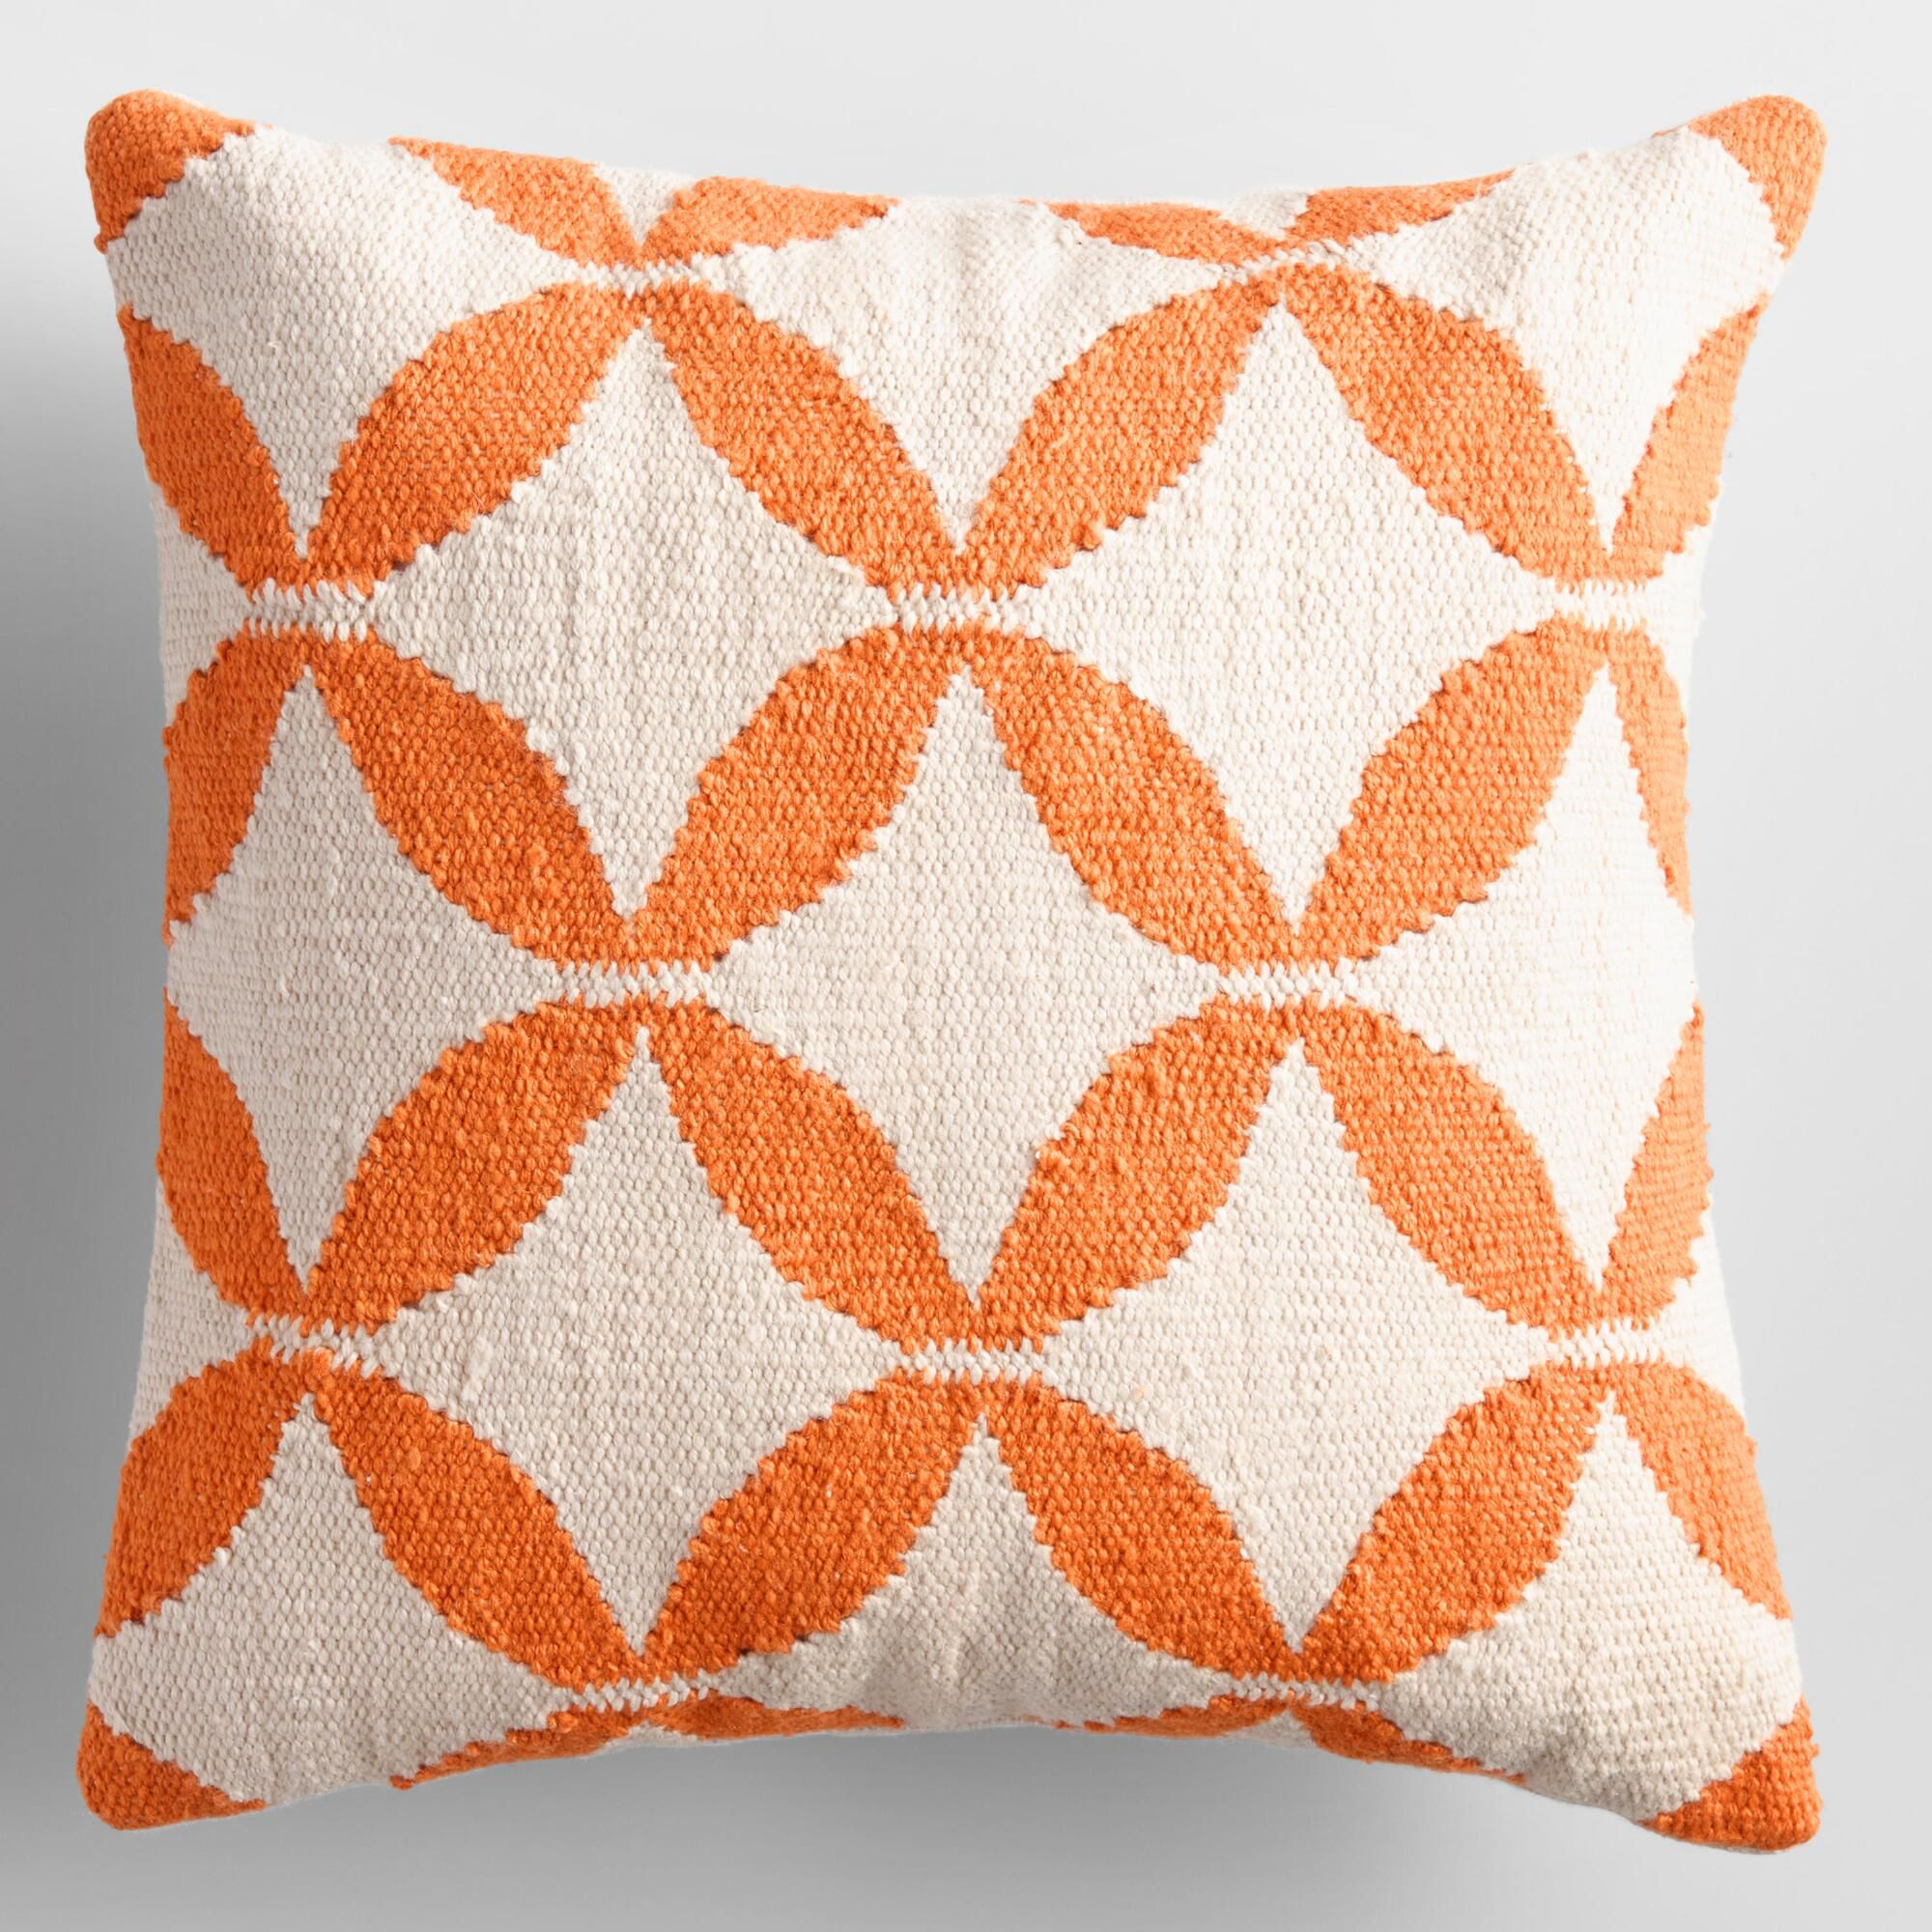 Bright Orange Petals Woven Indoor Outdoor Patio Throw Pillow 18 Square By World Market Colorful Throw Pillows Throw Pillows Diy Throw Pillows